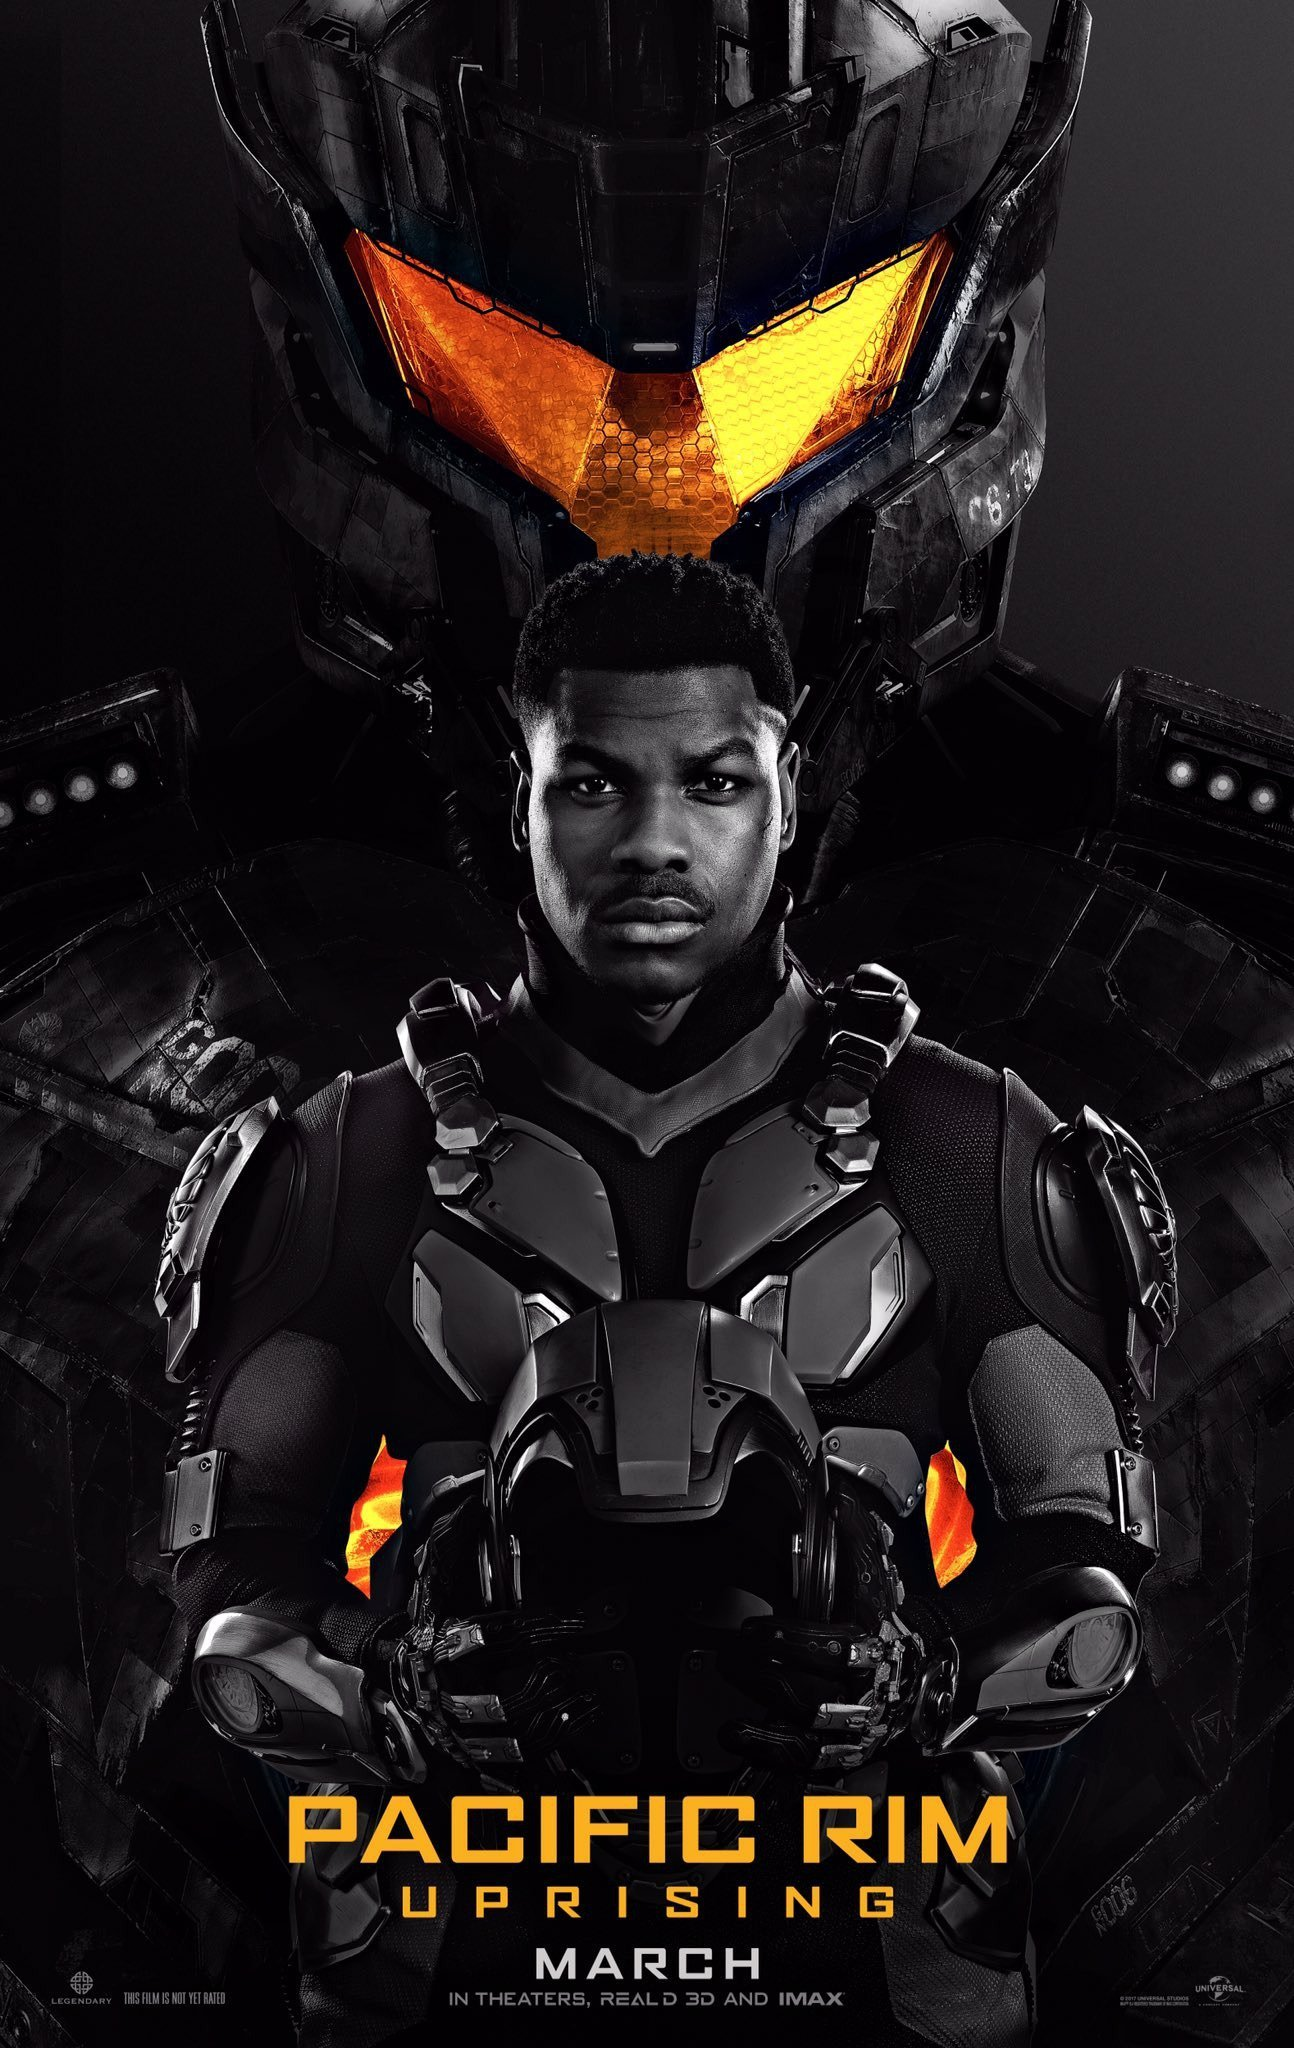 Poster of Pacific Rim: Uprising 3D